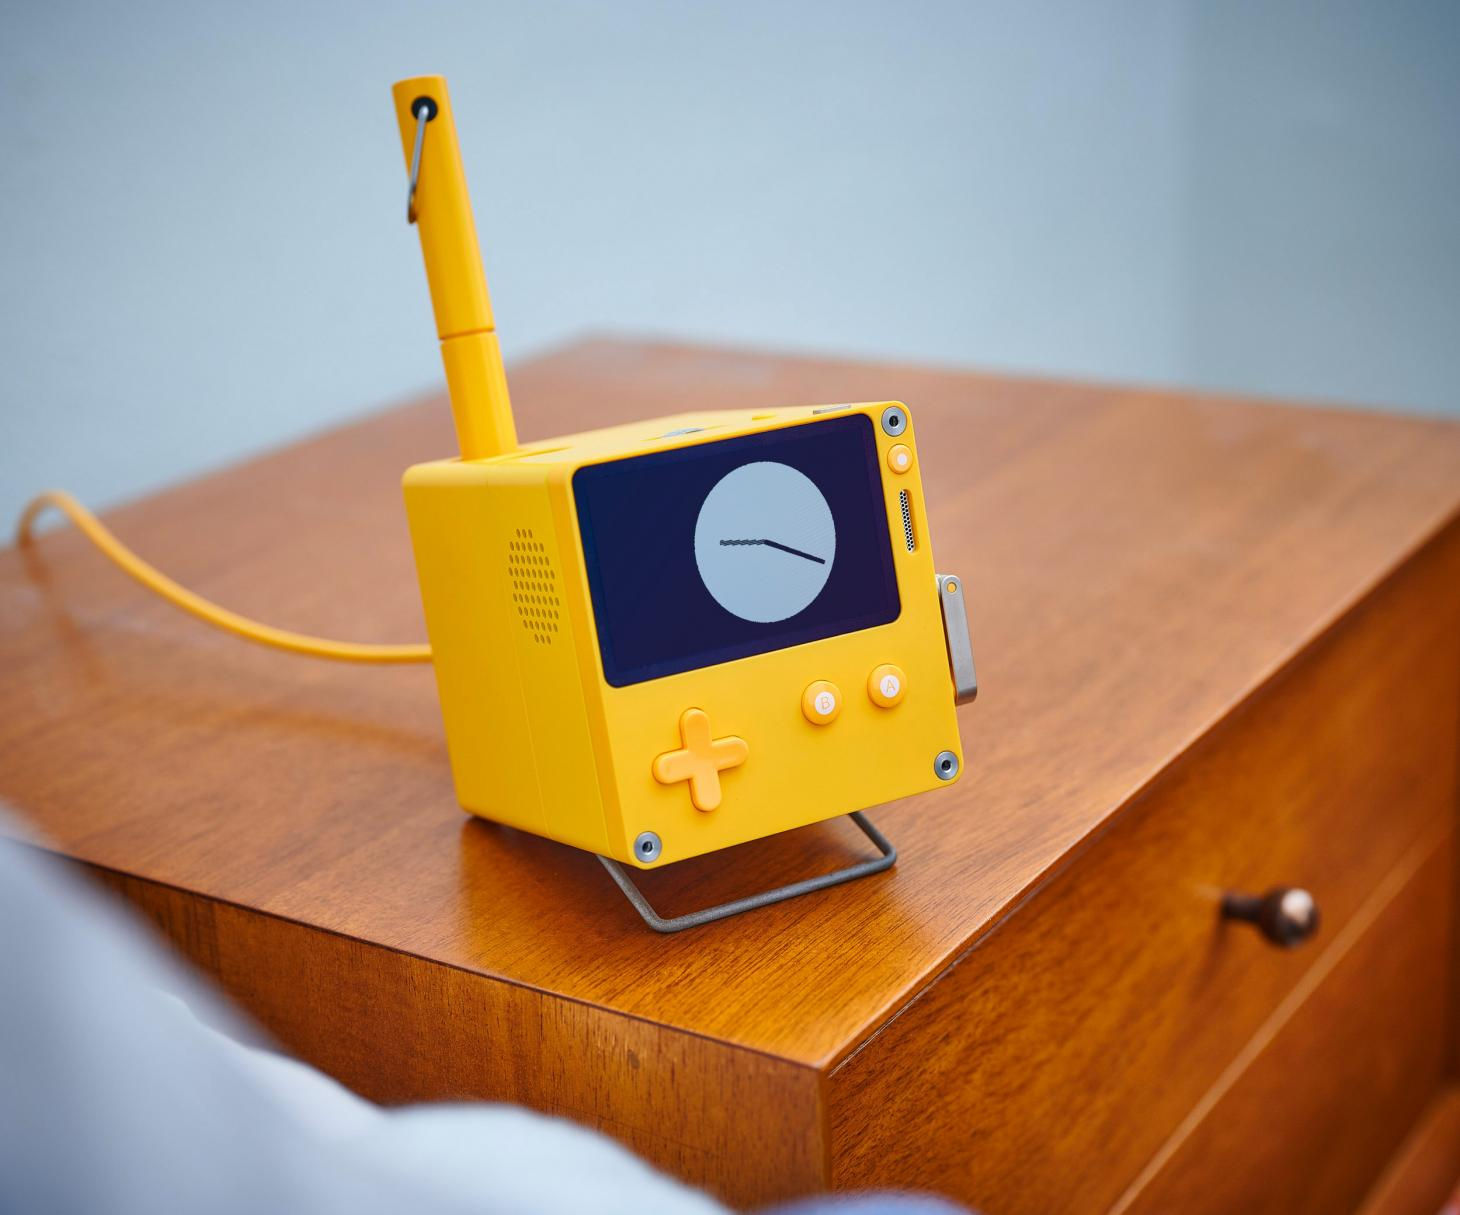 Playdate pocket console by Panic with its optional Stereo Dock